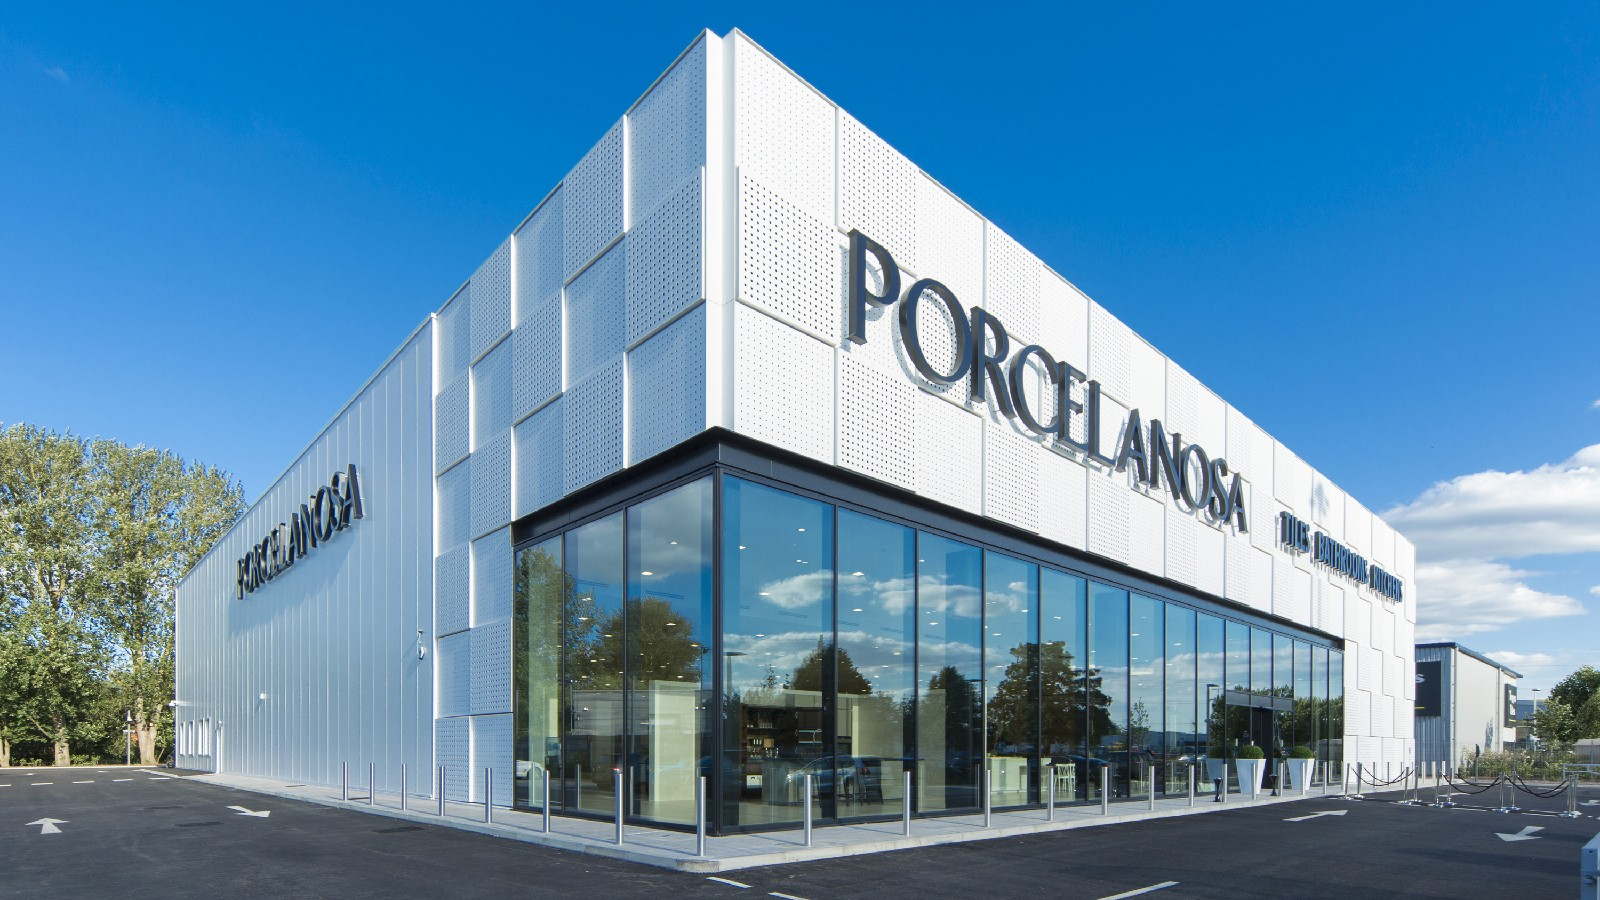 The PORCELANOSA Grupo opens a new showroom in Reading in the UK